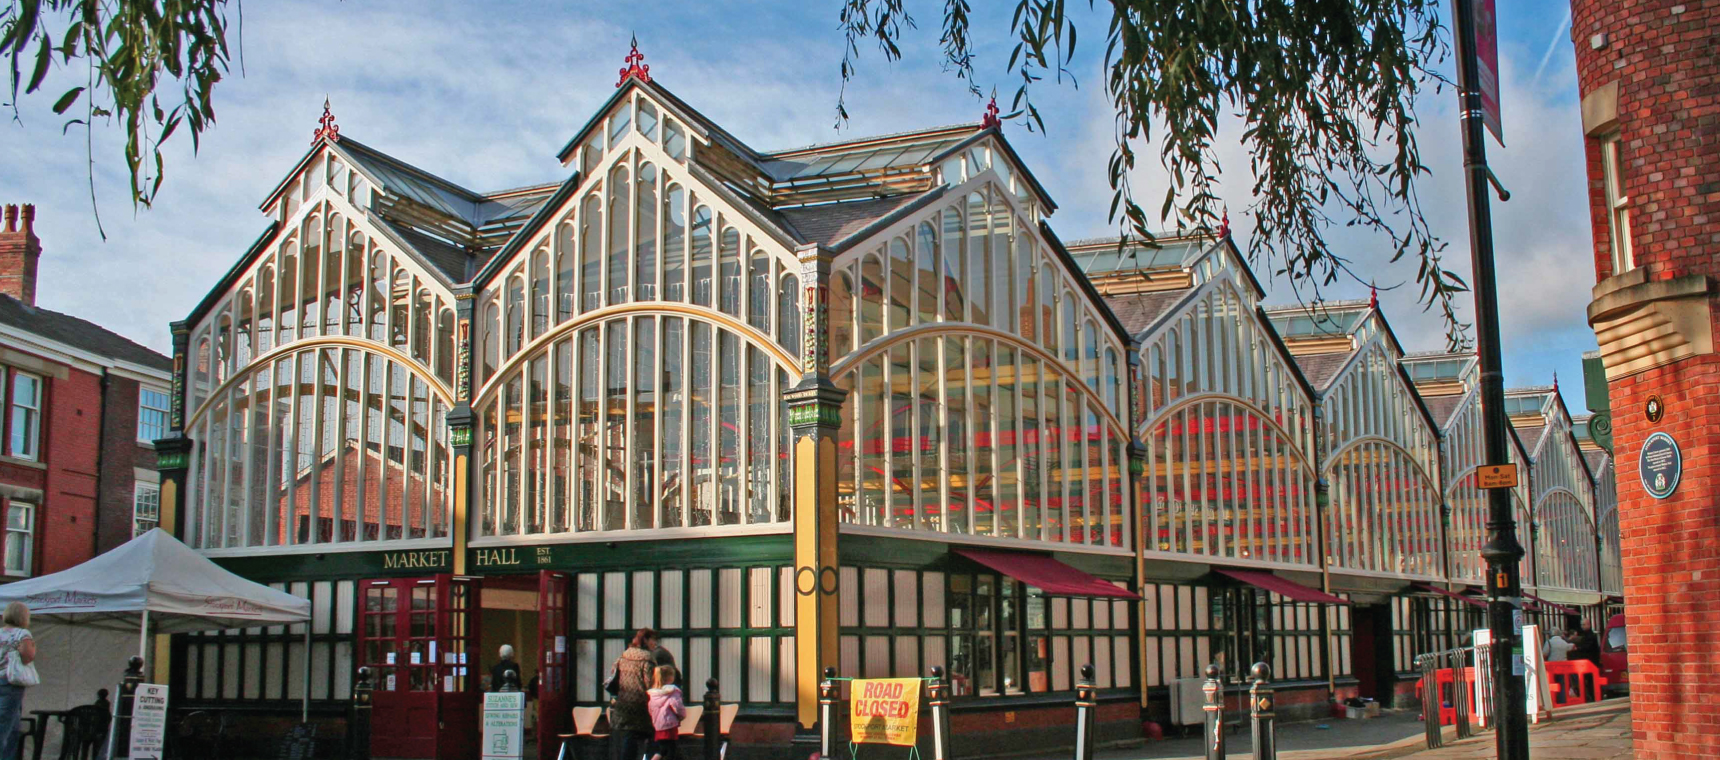 Stockport Market https://www.flickr.com/photos/the_yes_man/4061467259/ by the yes man. Creative Commons Licence https://creativecommons.org/licenses/by/2.0/